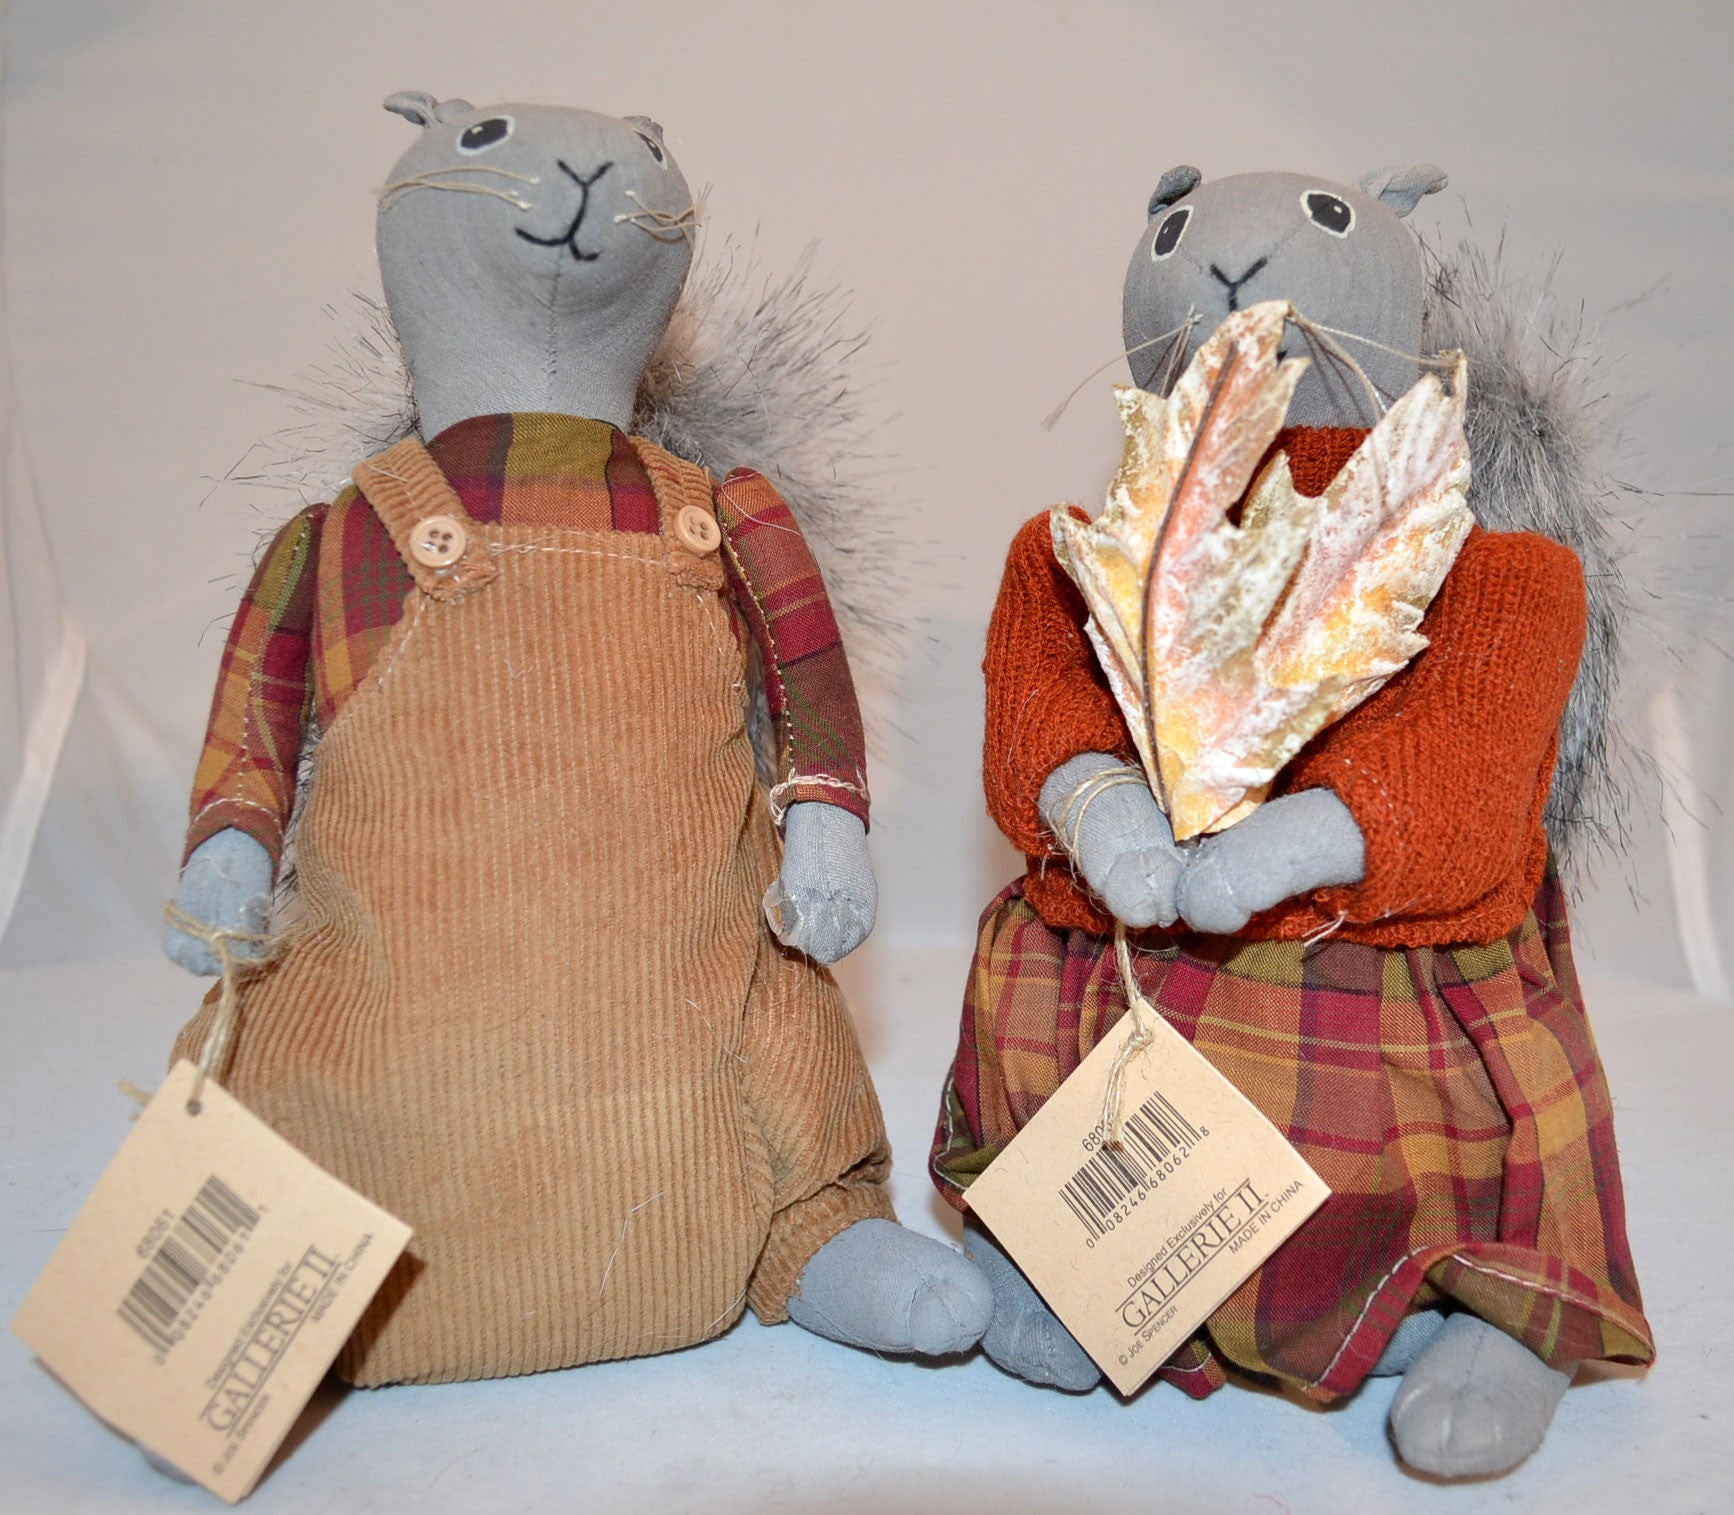 Buford and Bess Squirrel Dolls - Squirrels and More